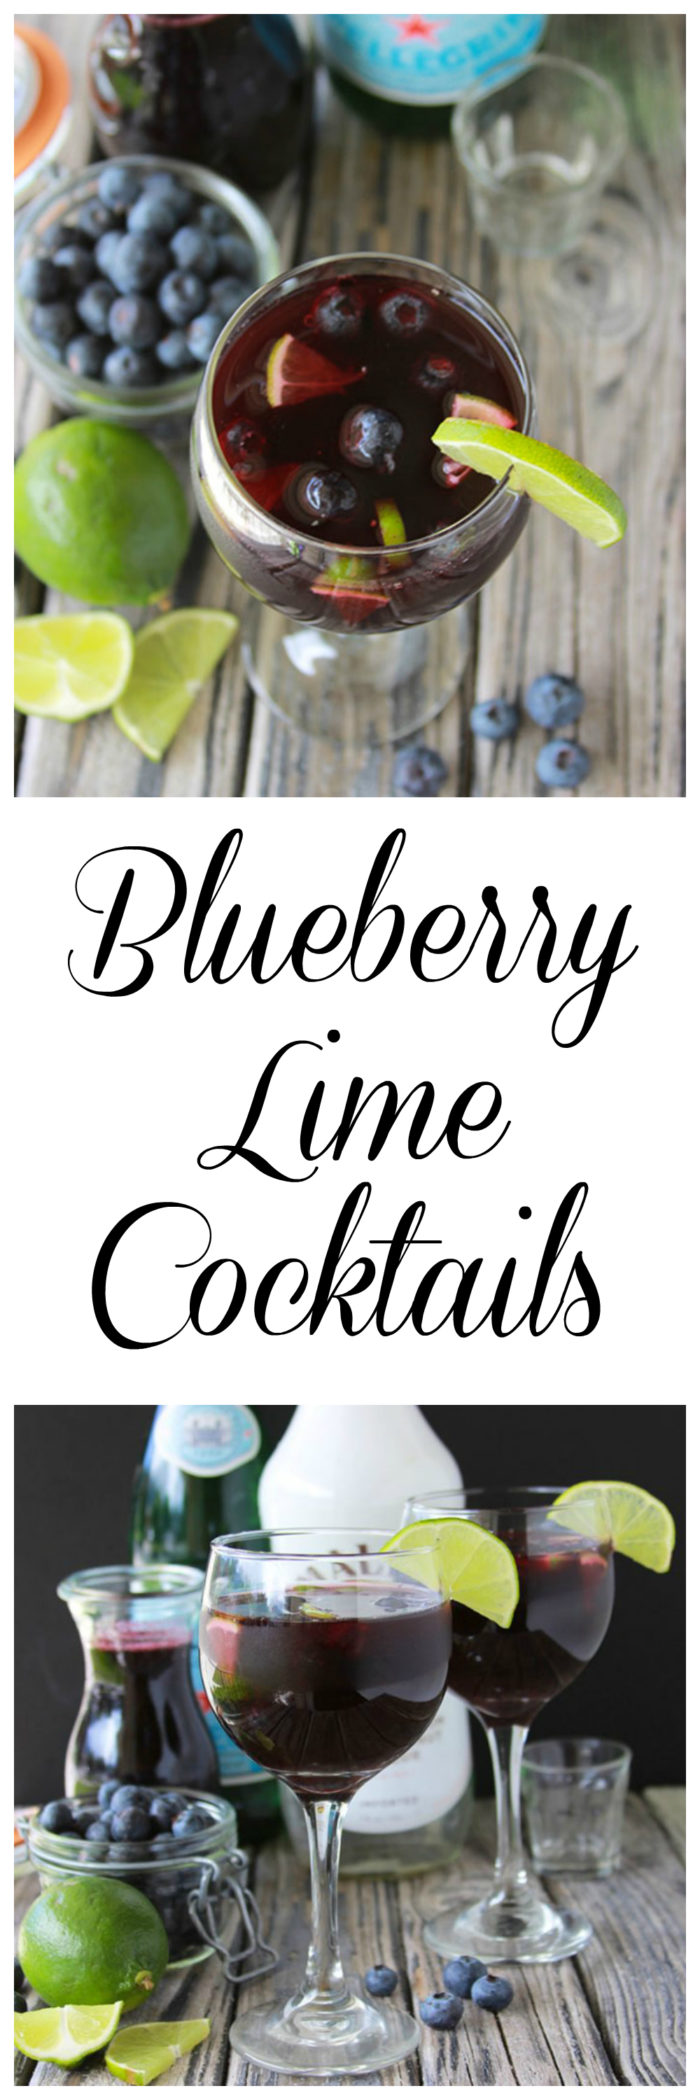 Blueberry Lime Cocktails or Mocktails are a lovely beverage for your summer gatherings! www.cookingwithruthie.com